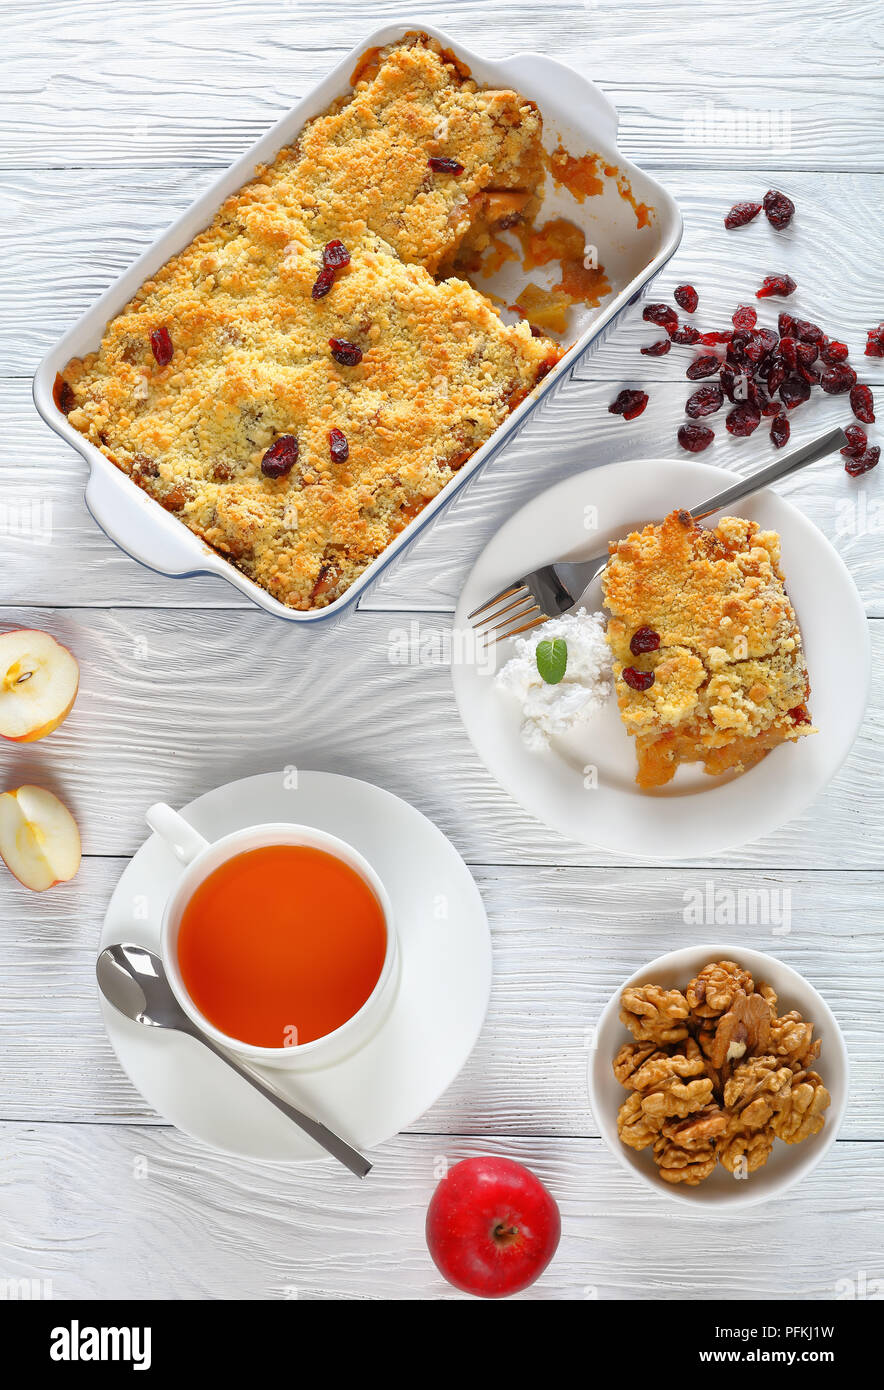 gluten free breakfast set -  apple crumble or apple crisp in baking dish and a portion on plate with coconut cream and  cup of tea on table, vertical  - Stock Image